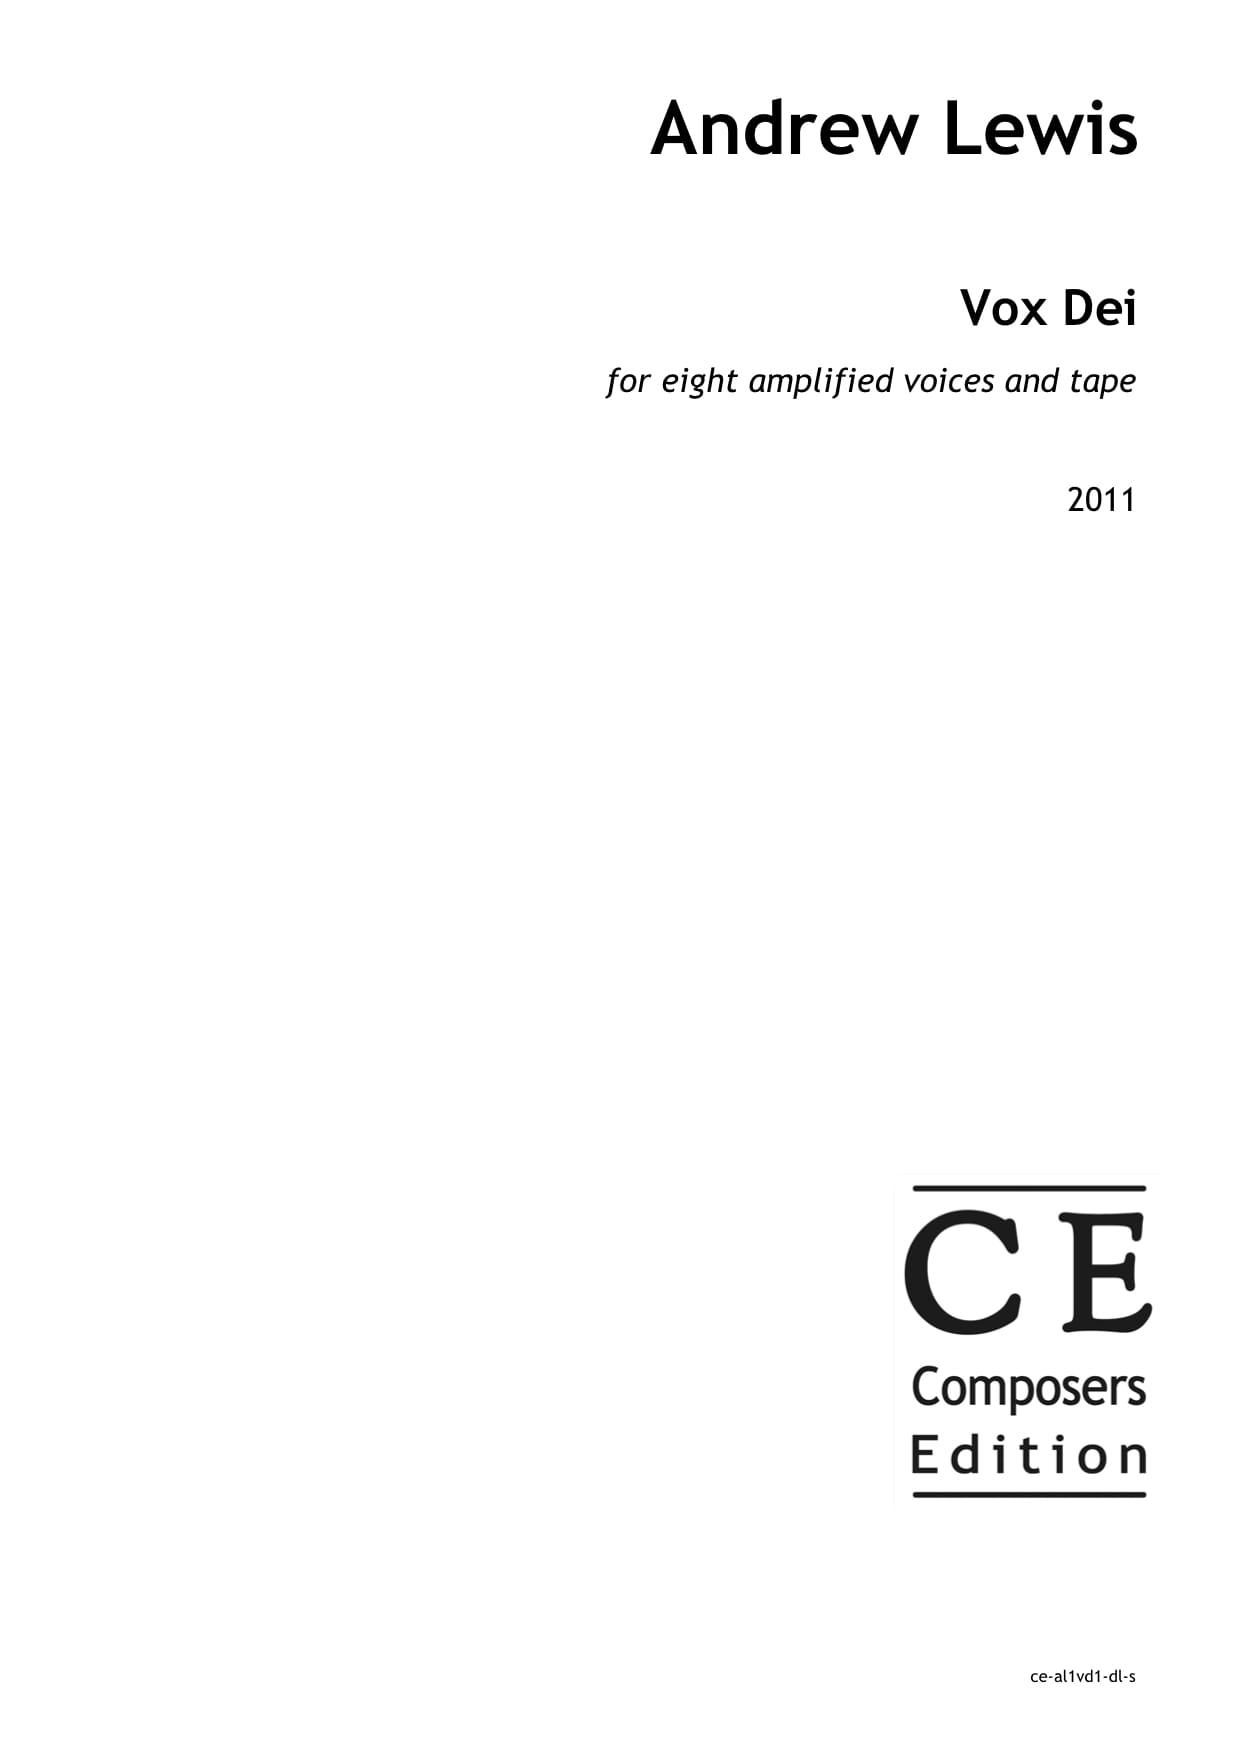 Andrew Lewis: Vox Dei for eight amplified voices and tape